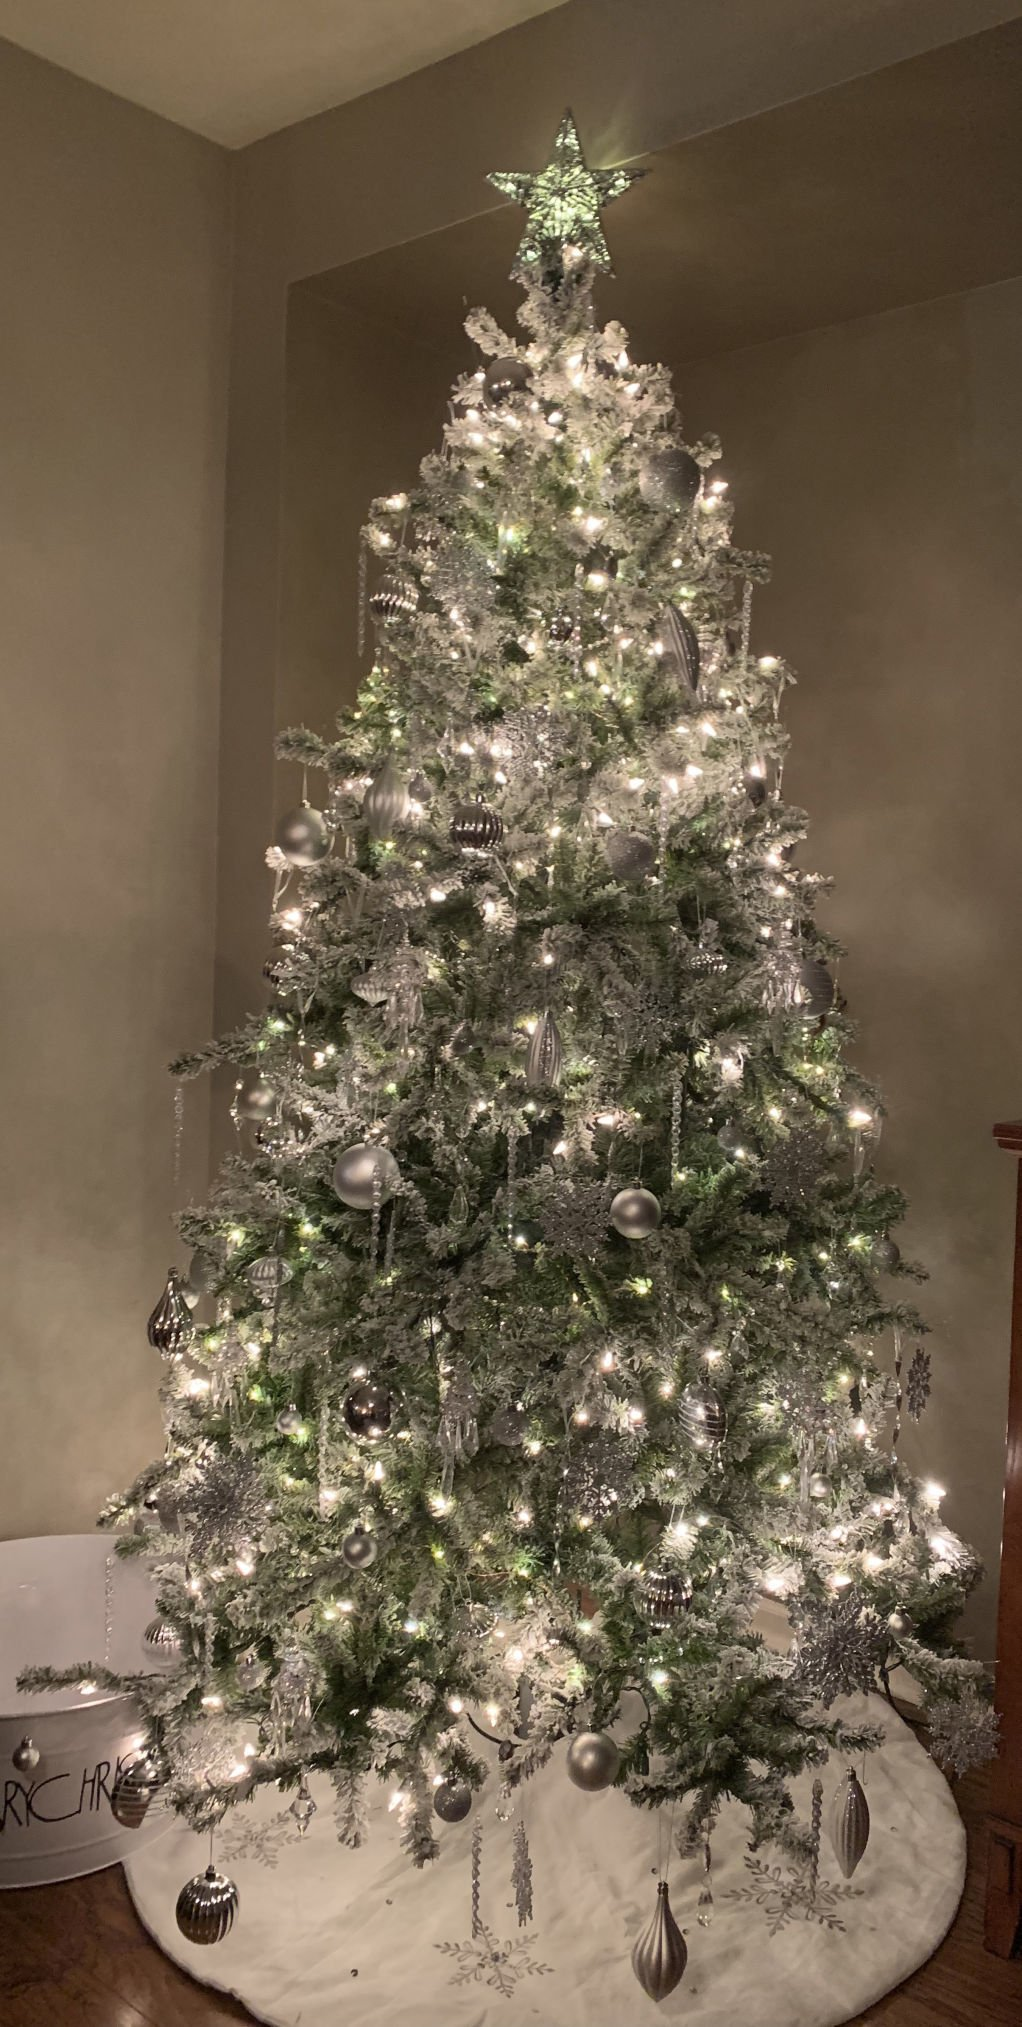 Kenosha News Wants To See Your Best Dressed Tree Local News